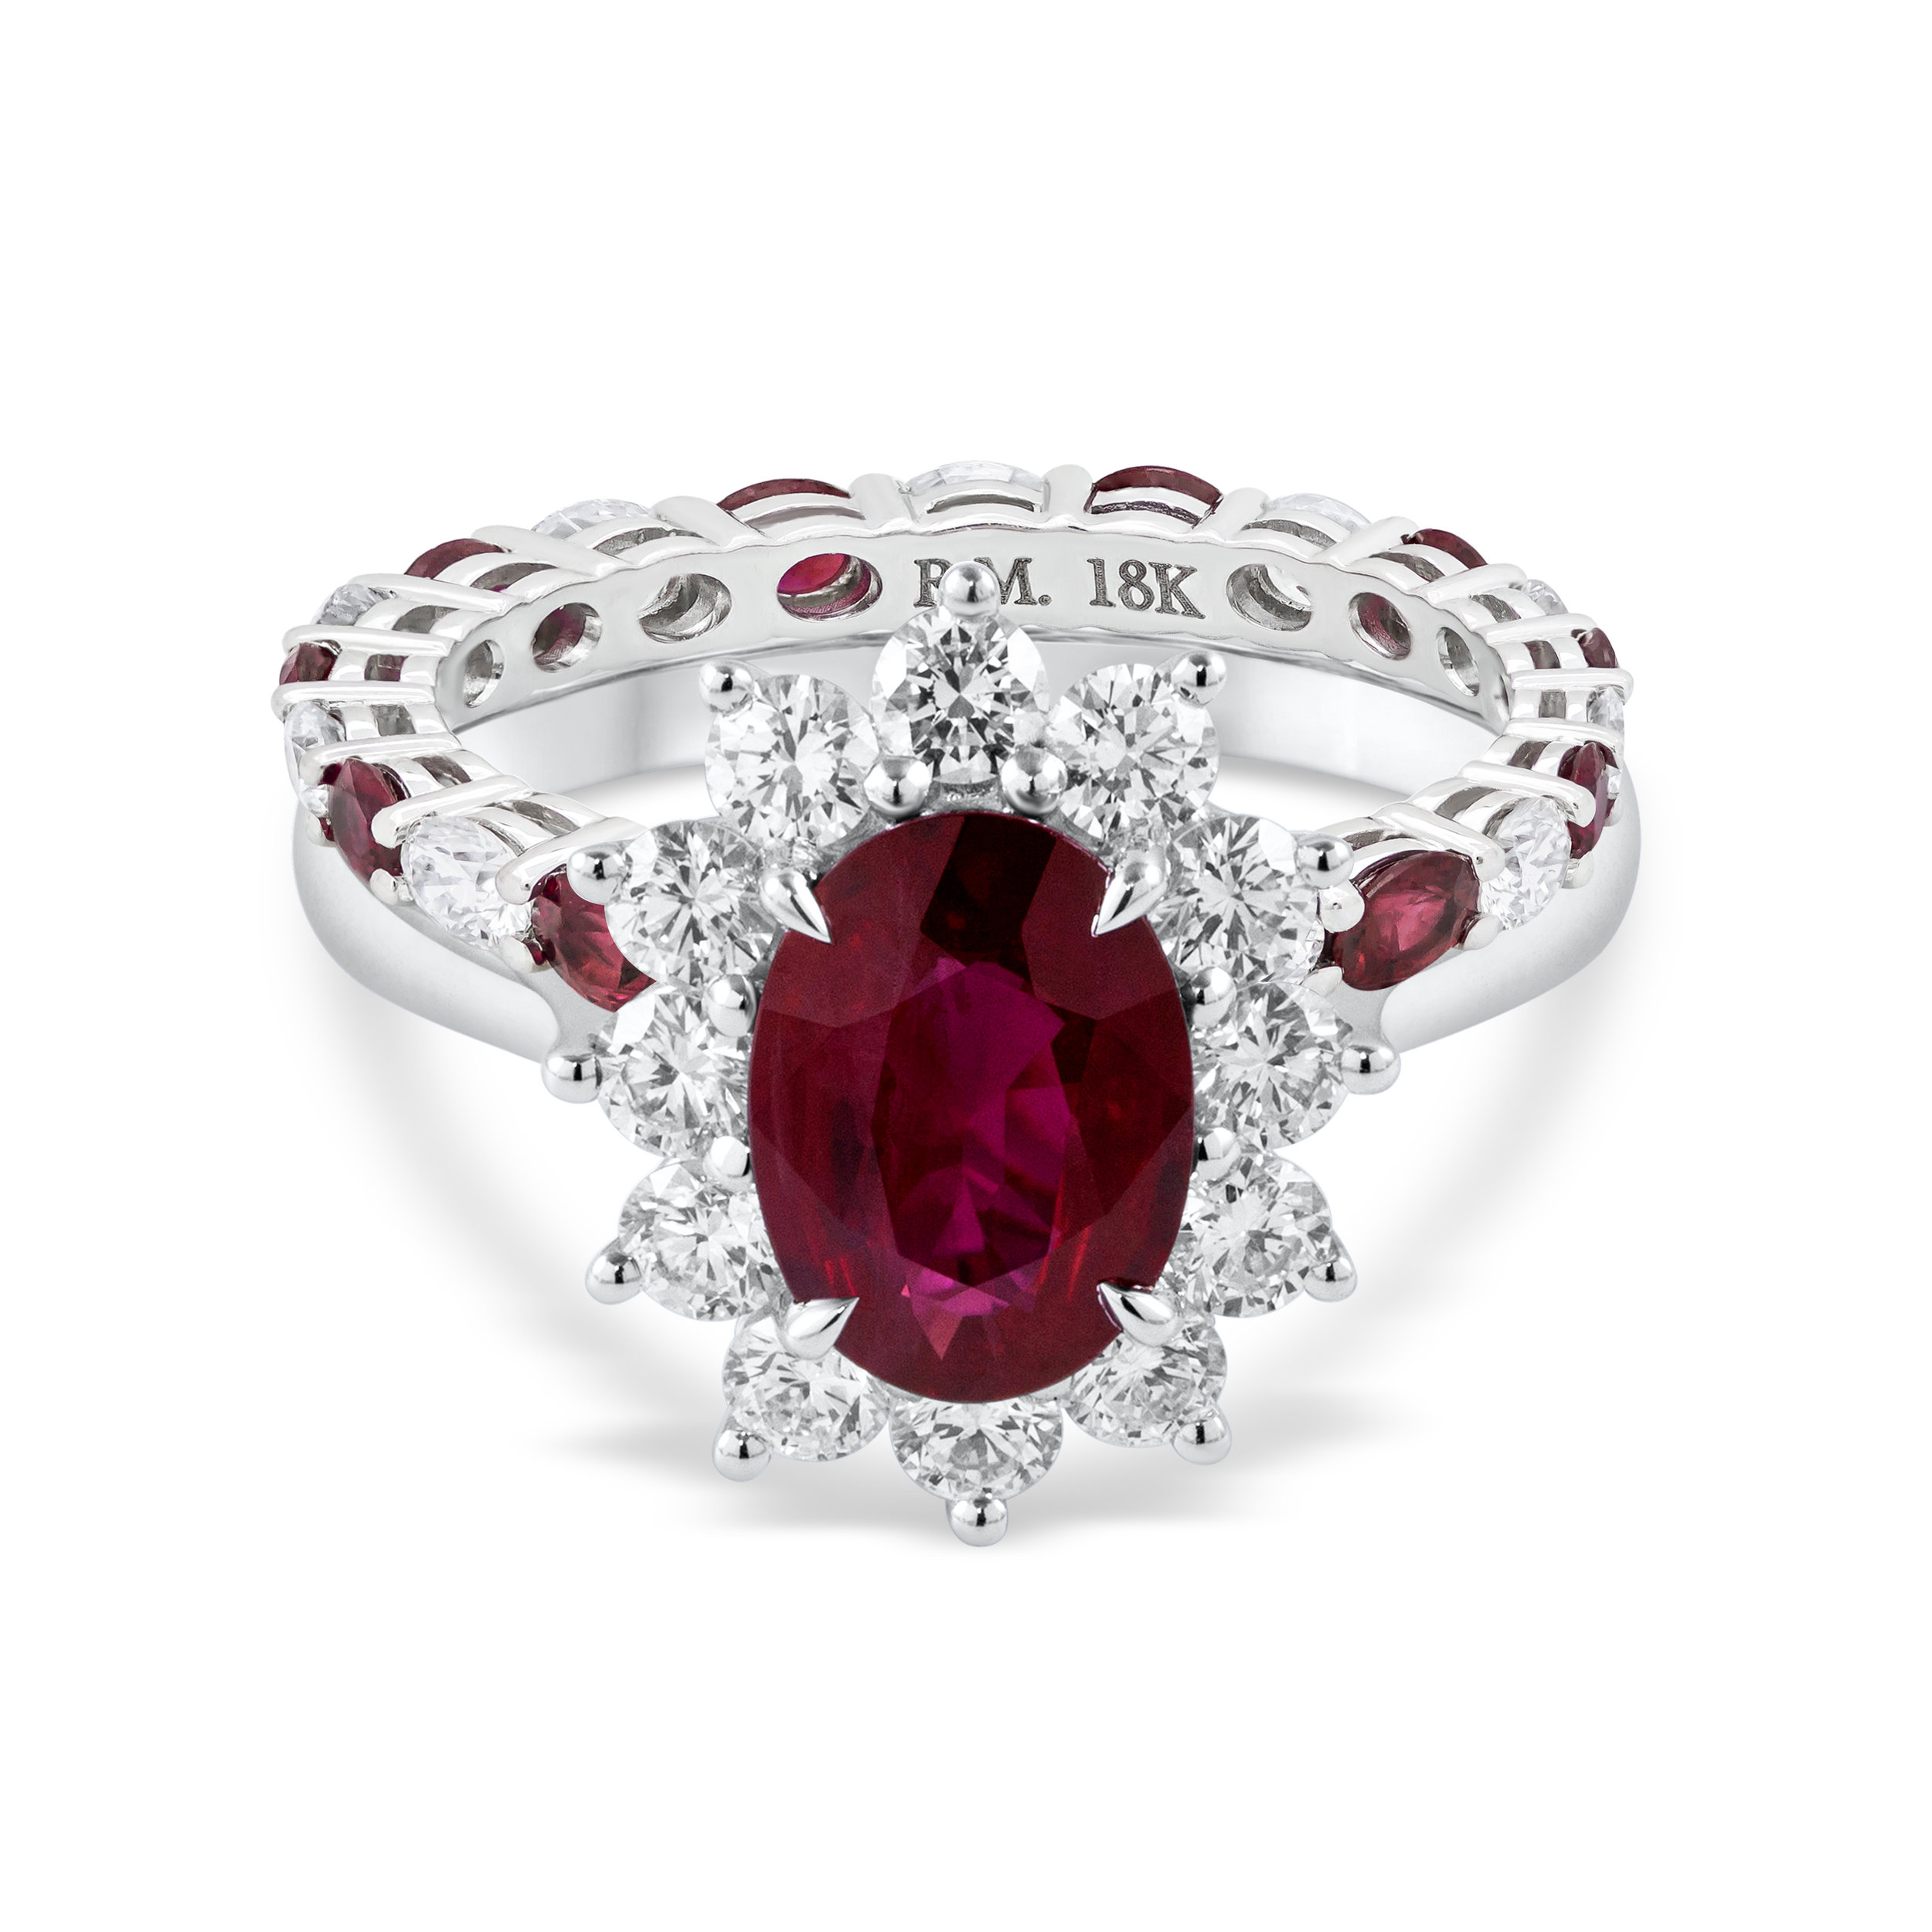 Vibrant oval cut ruby engagement ring with a diamond halo matched with an  alternating ruby and diamond eternity wedding band.